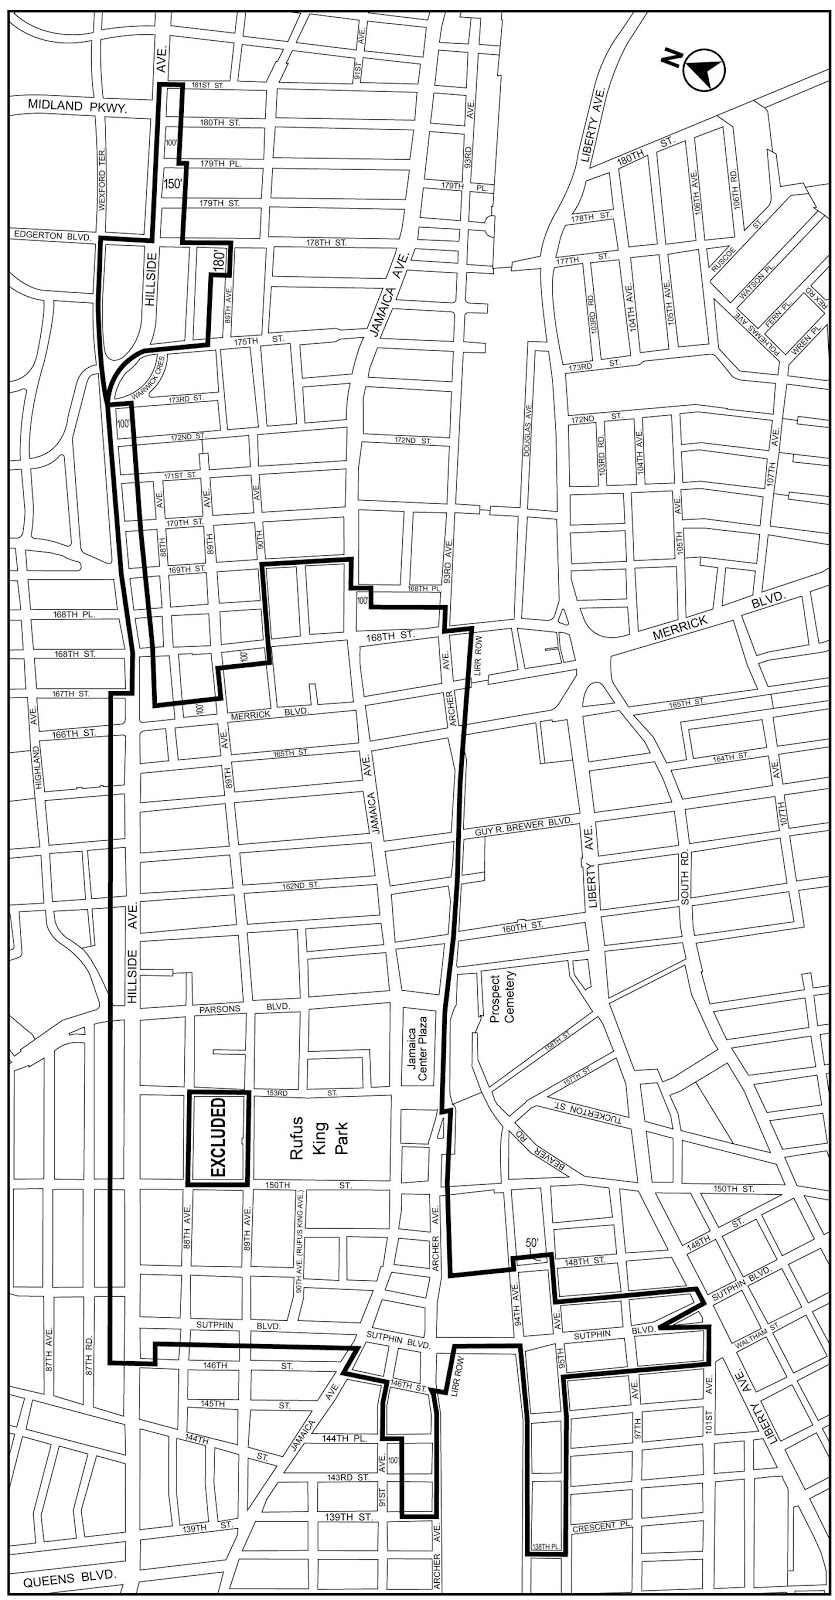 Zoning Resolutions F-Inclusionary Housing Designated Areas and Mandatory Inclusionary Housing Areas_2.122